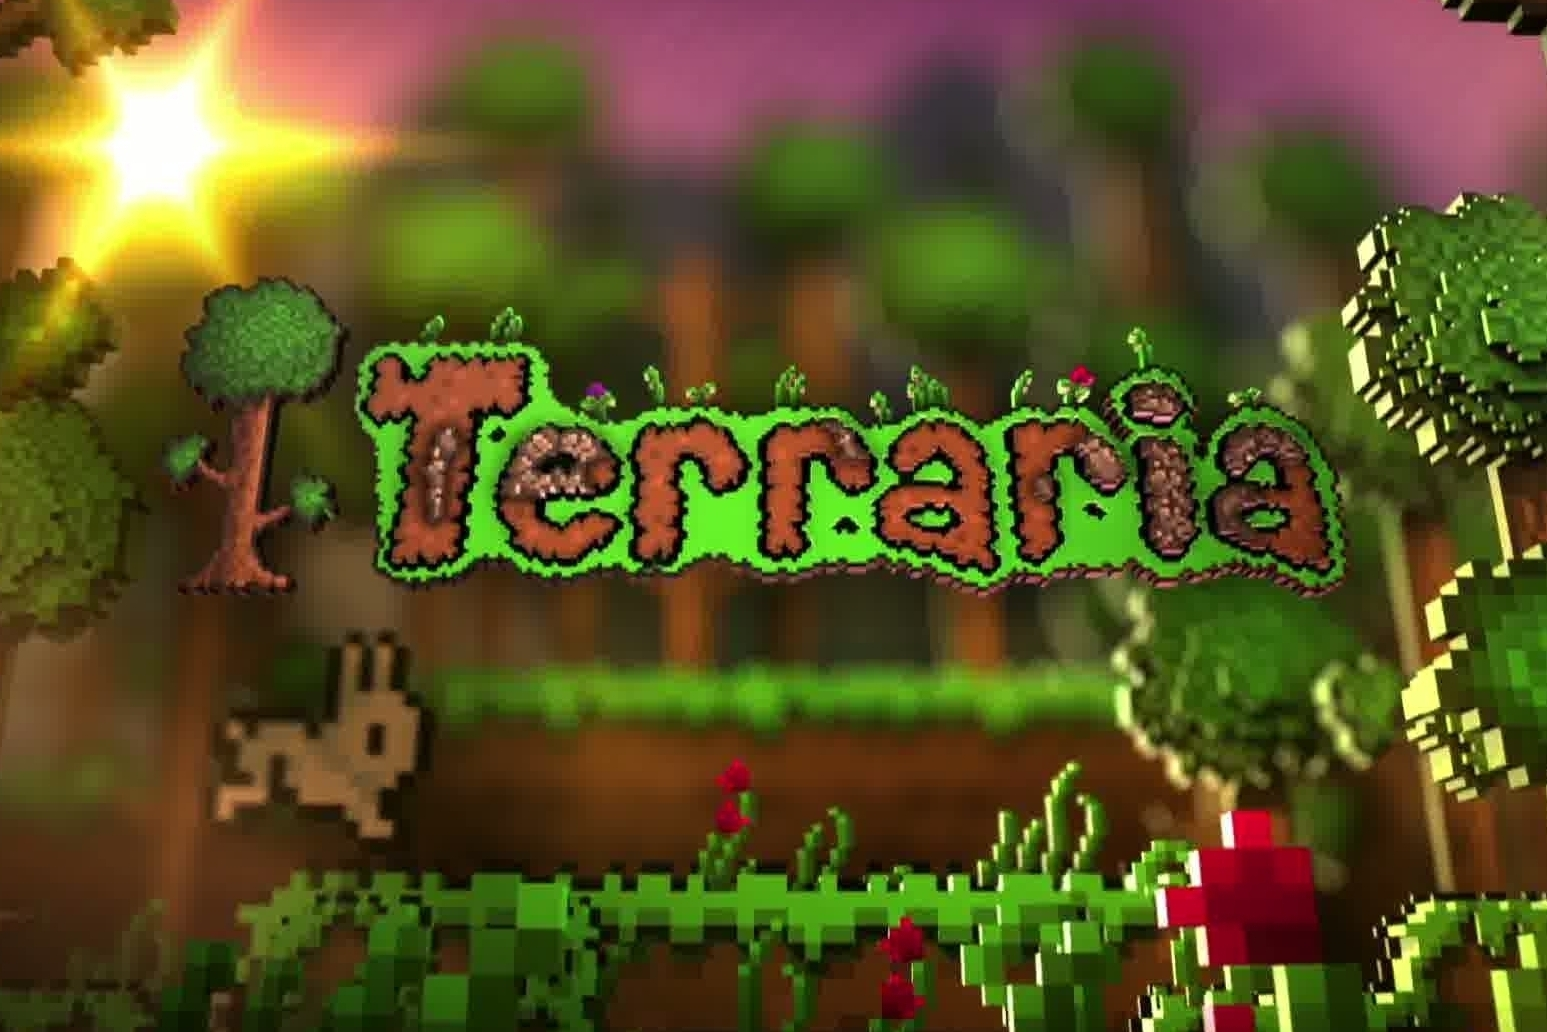 awesome terraria wallpaper - Google Search | Games | Pinterest